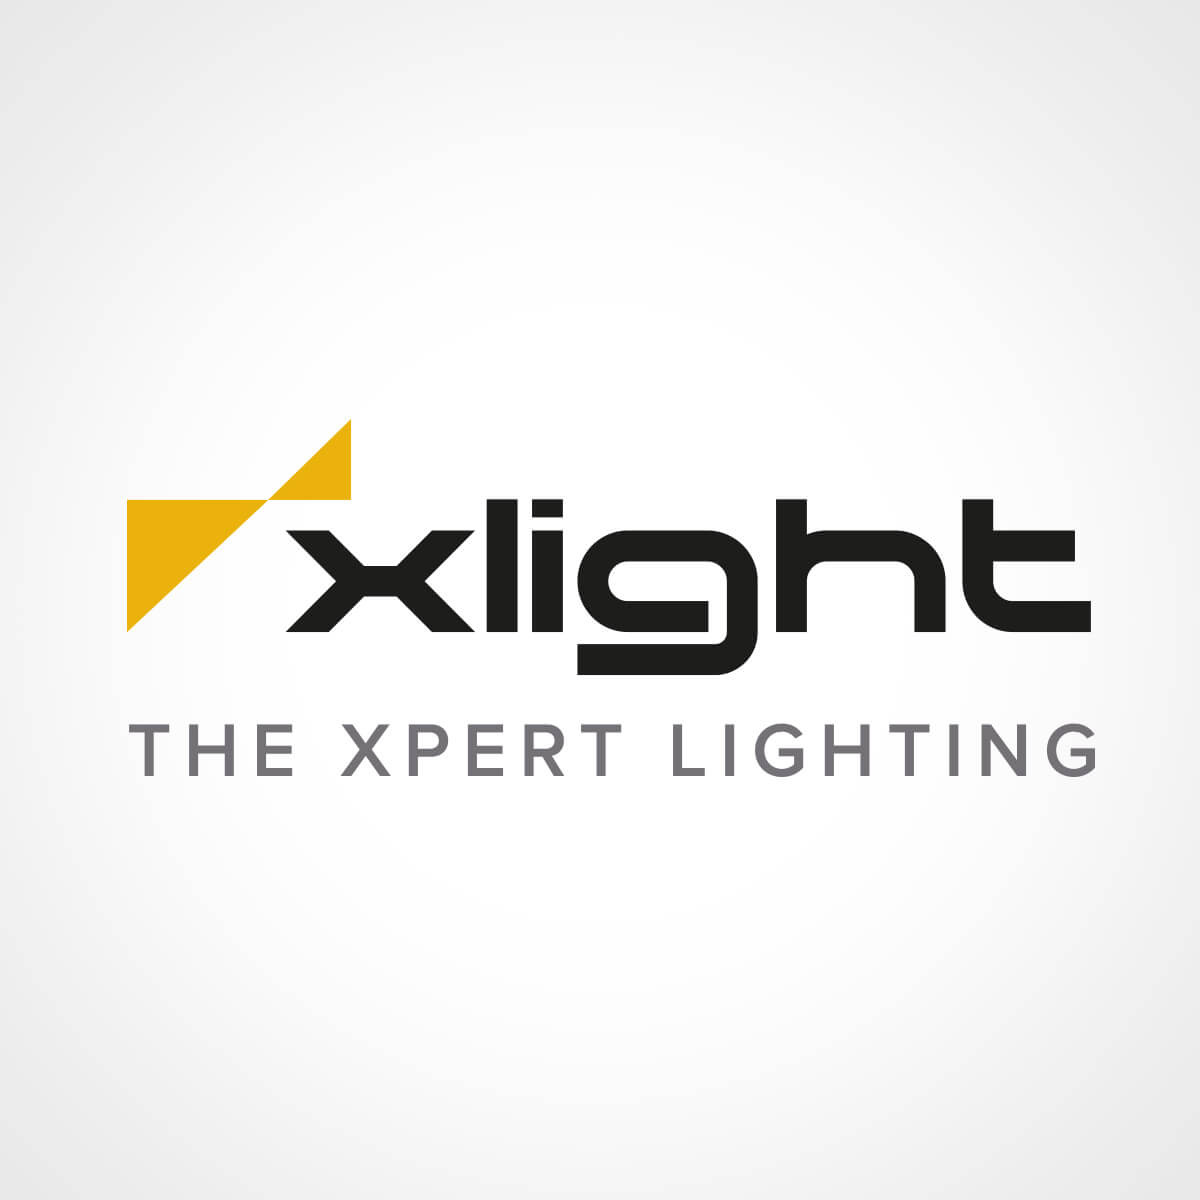 XLight logo design